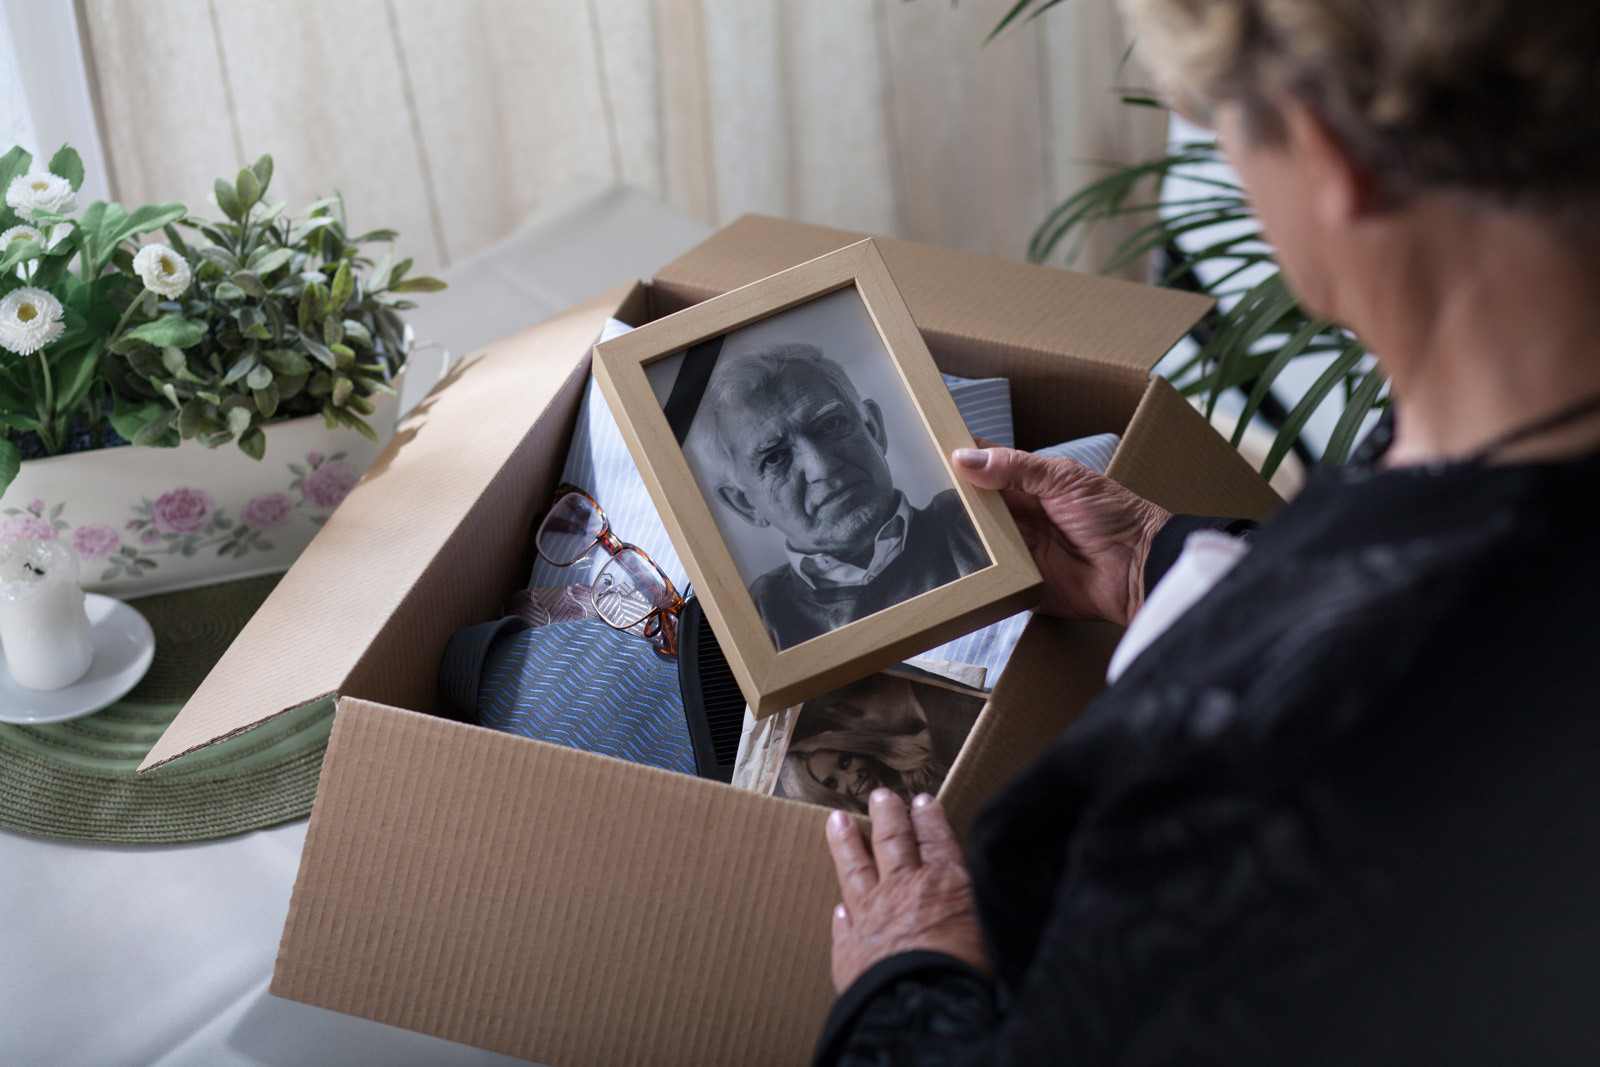 Older woman looking in a box of things and holding a black and white photo of an old man